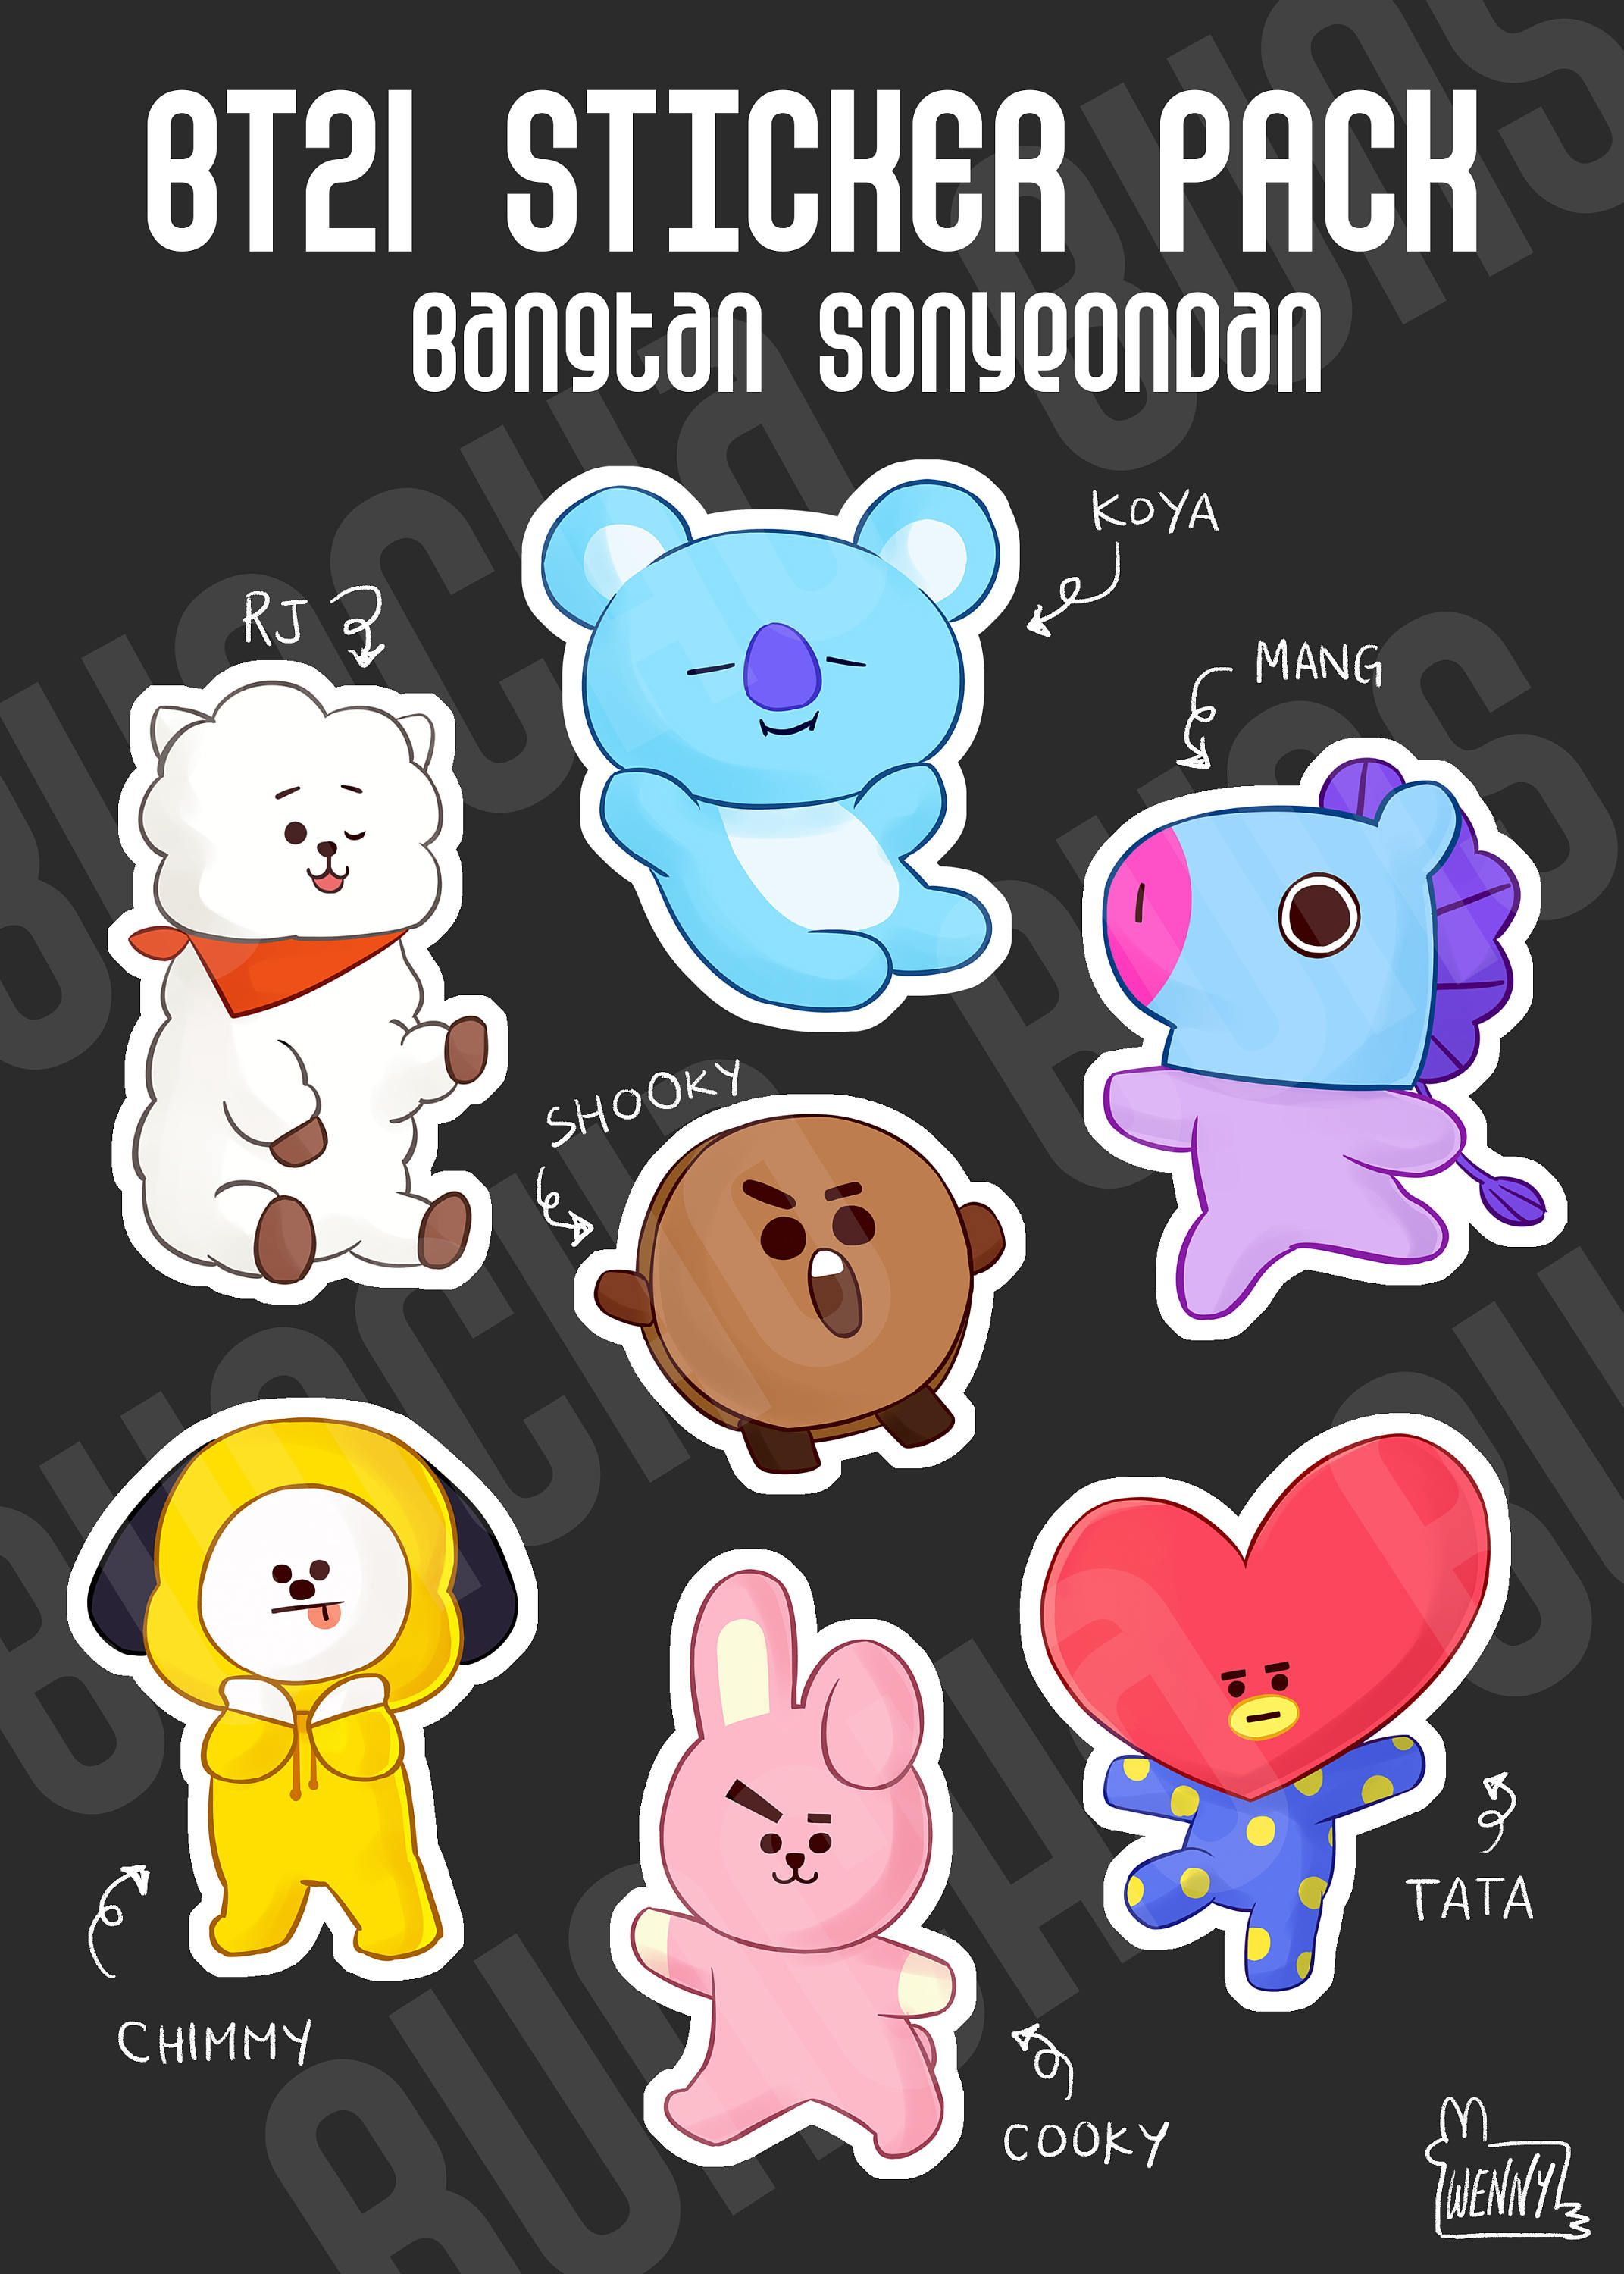 Pin By Ivanna Perez On Bts Bts Chibi Stickers Packs Stickers